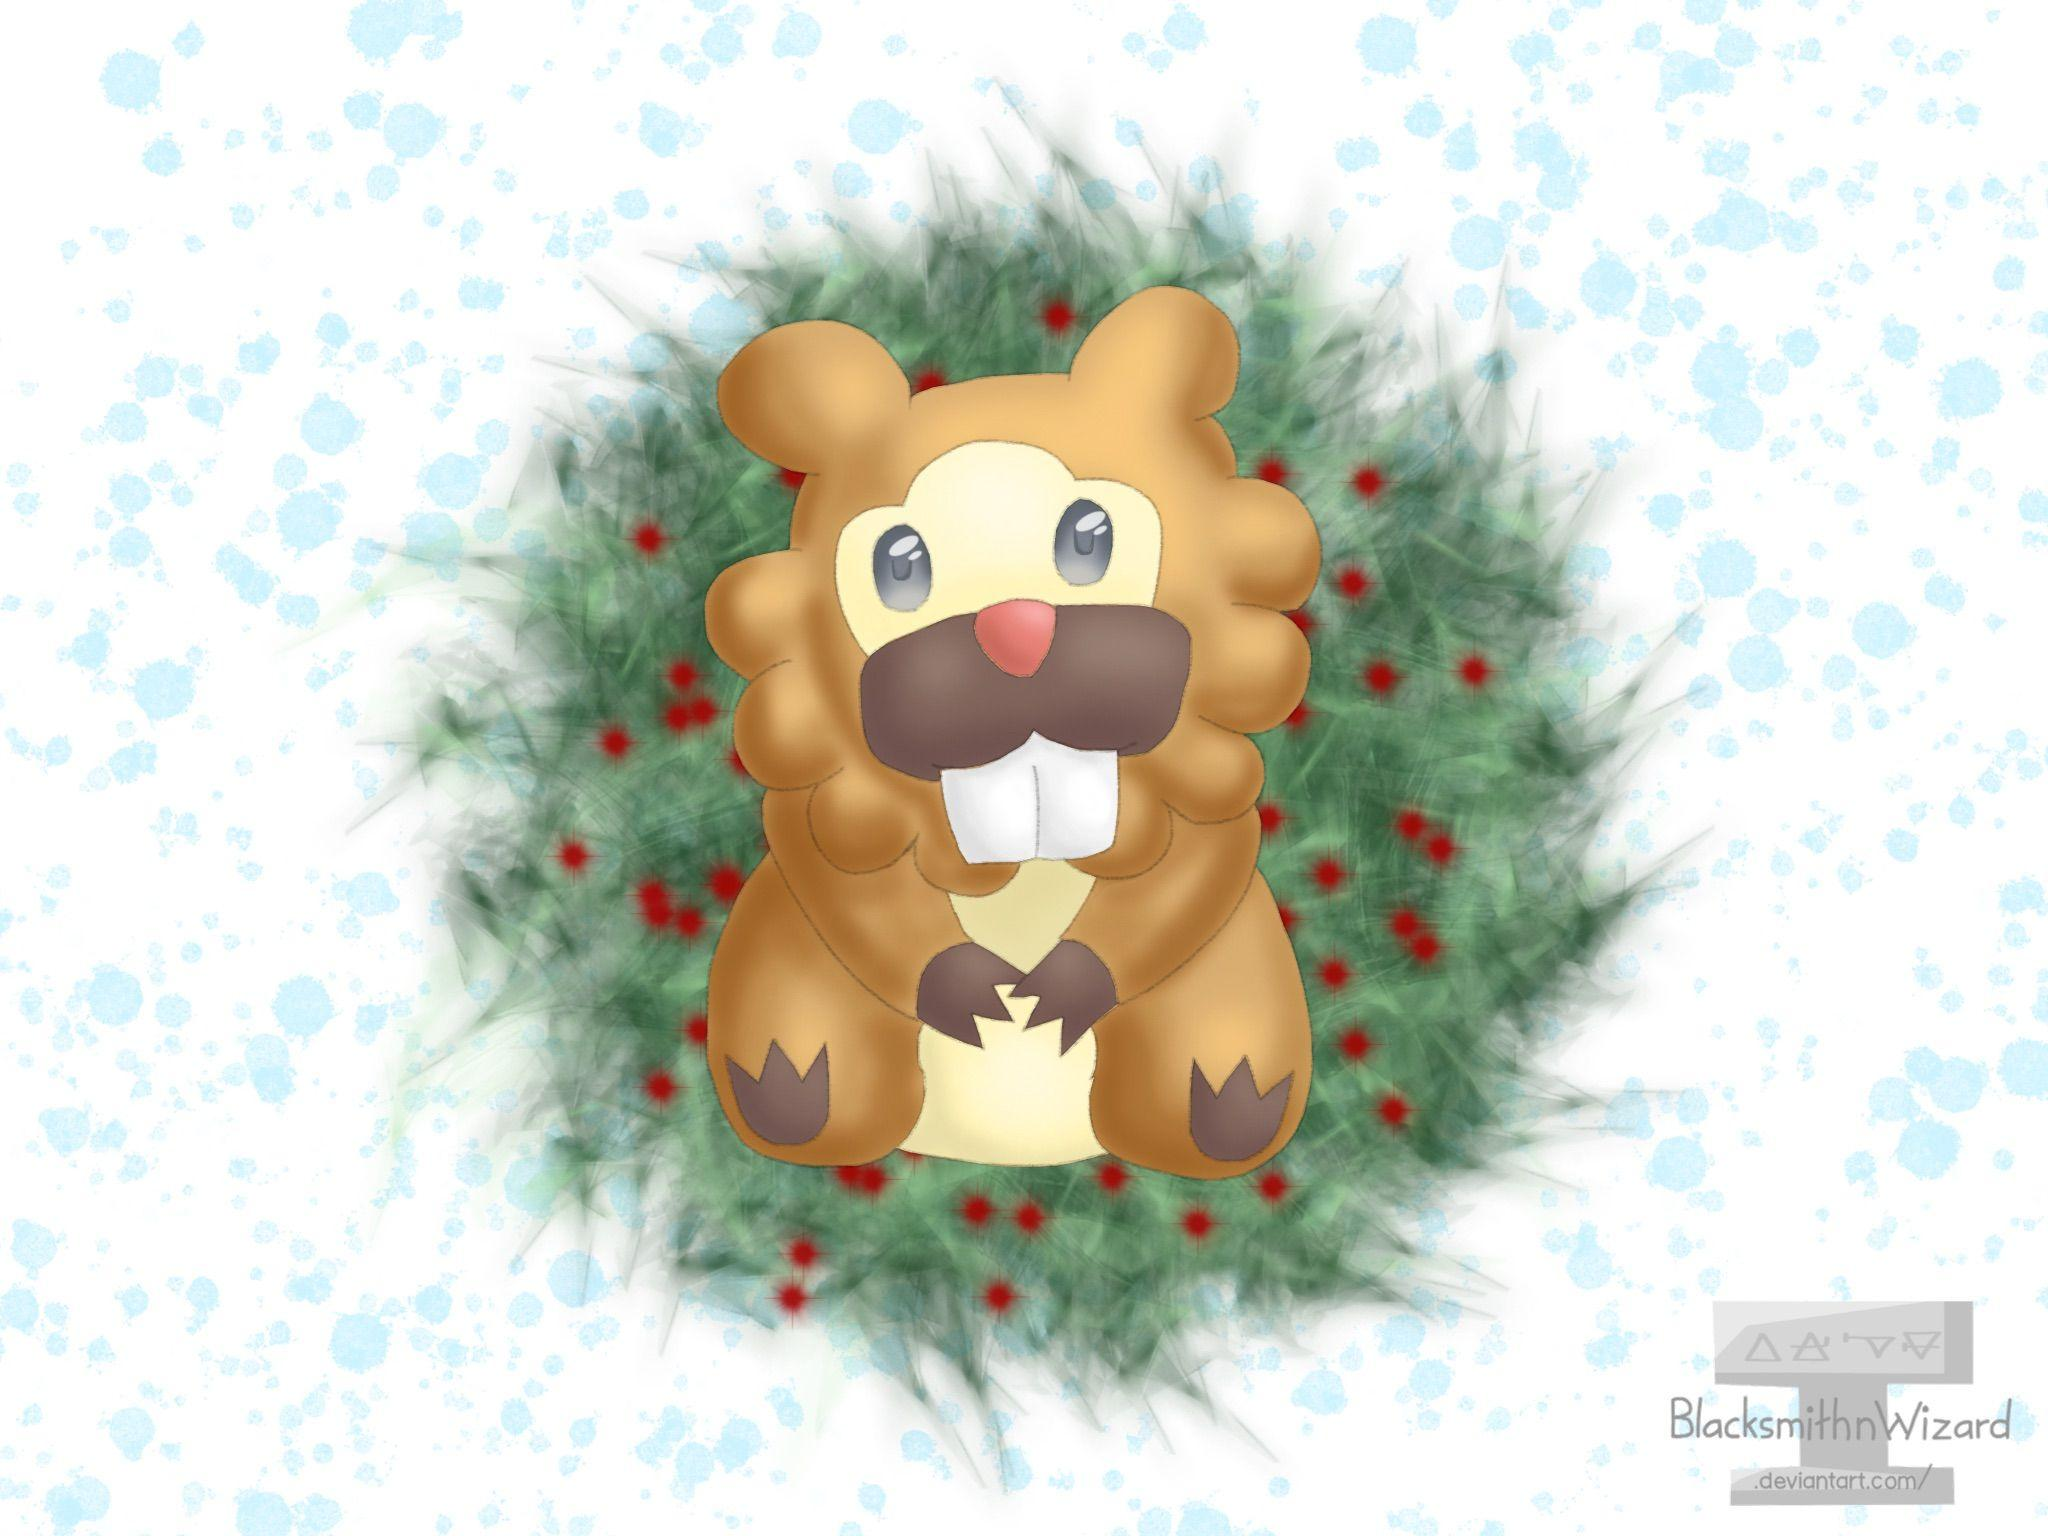 Bidoof Christmas by BlacksmithnWizard on DeviantArt